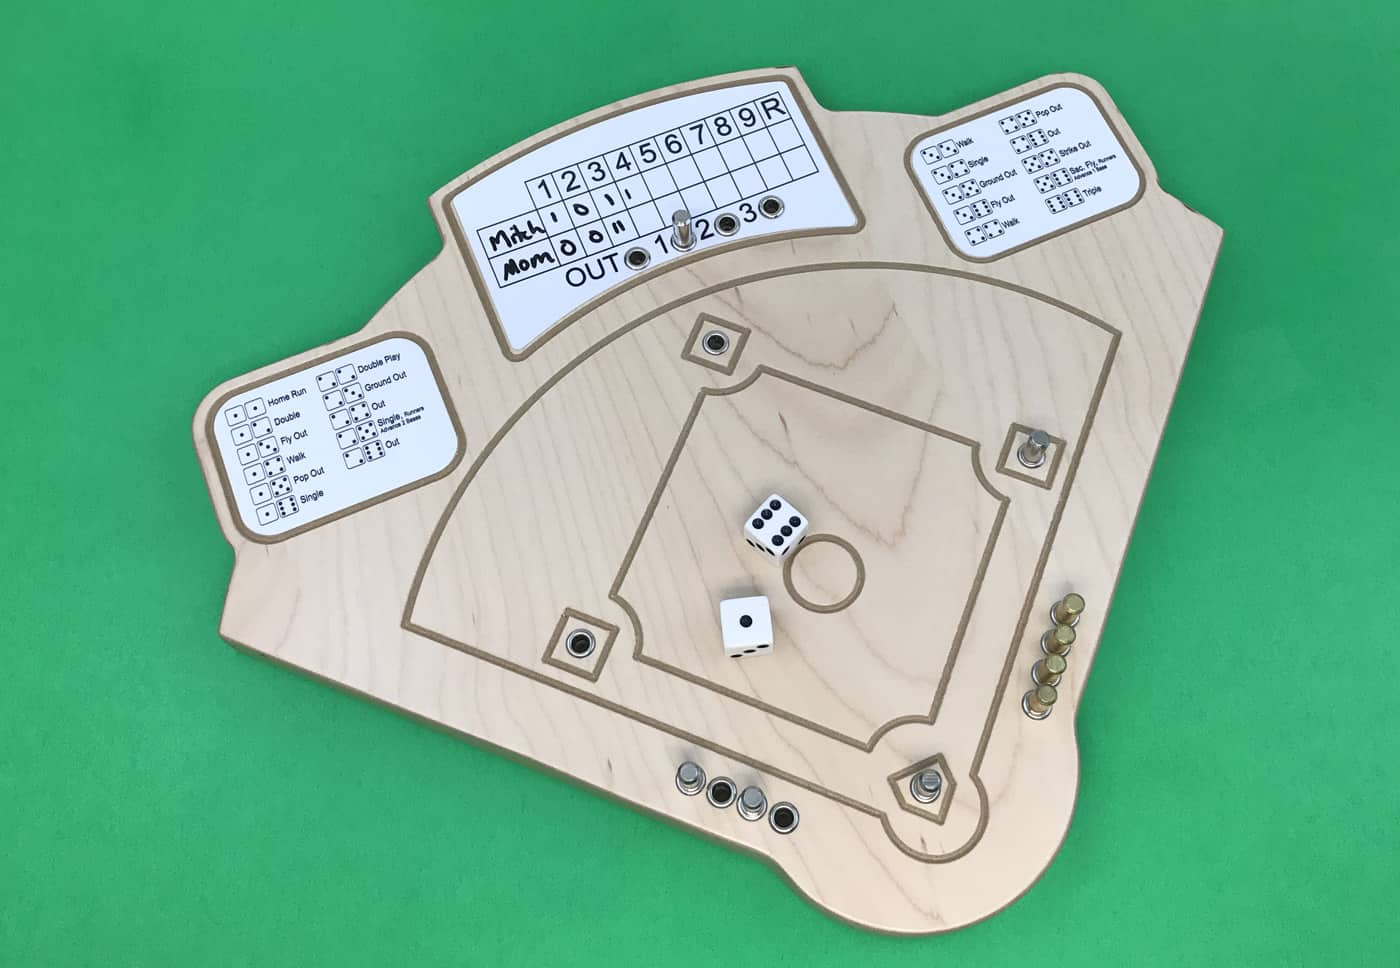 Across the Board baseball dice game with a wooden board